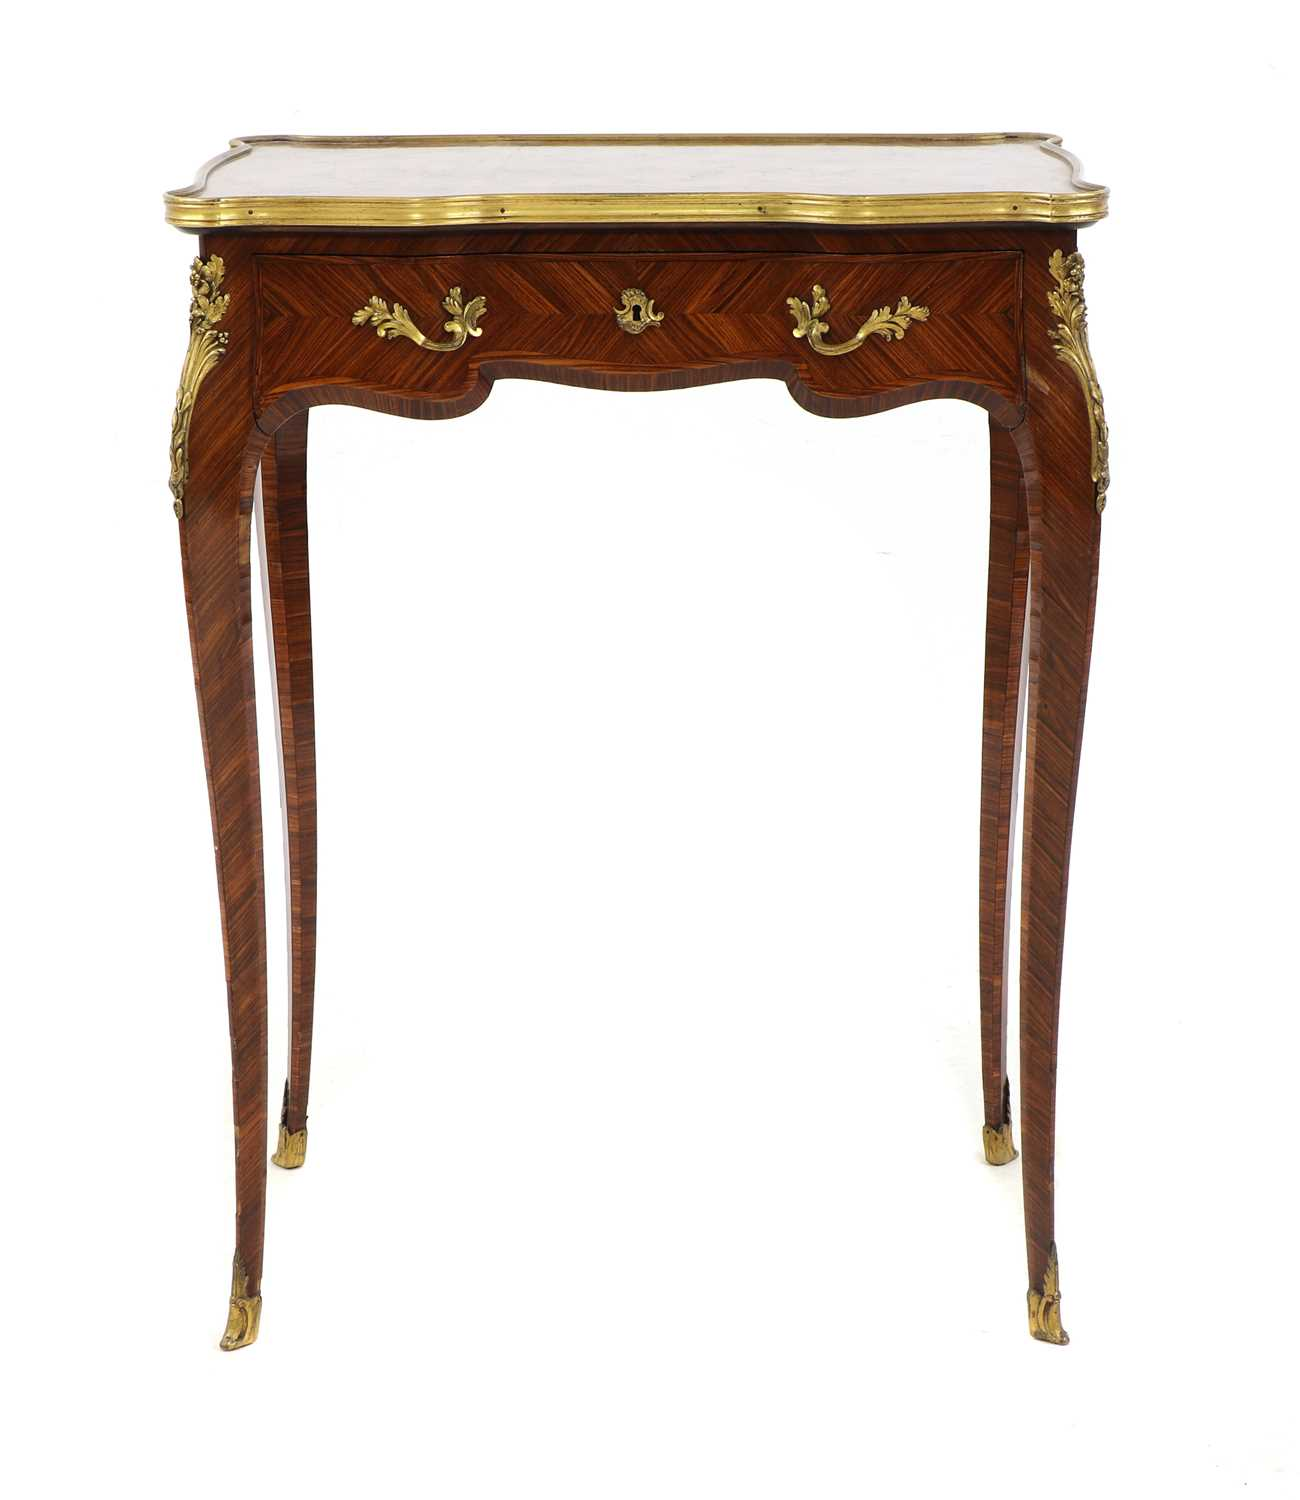 Lot 26 - A Louis XV-style kingwood and ormolu-mounted side table